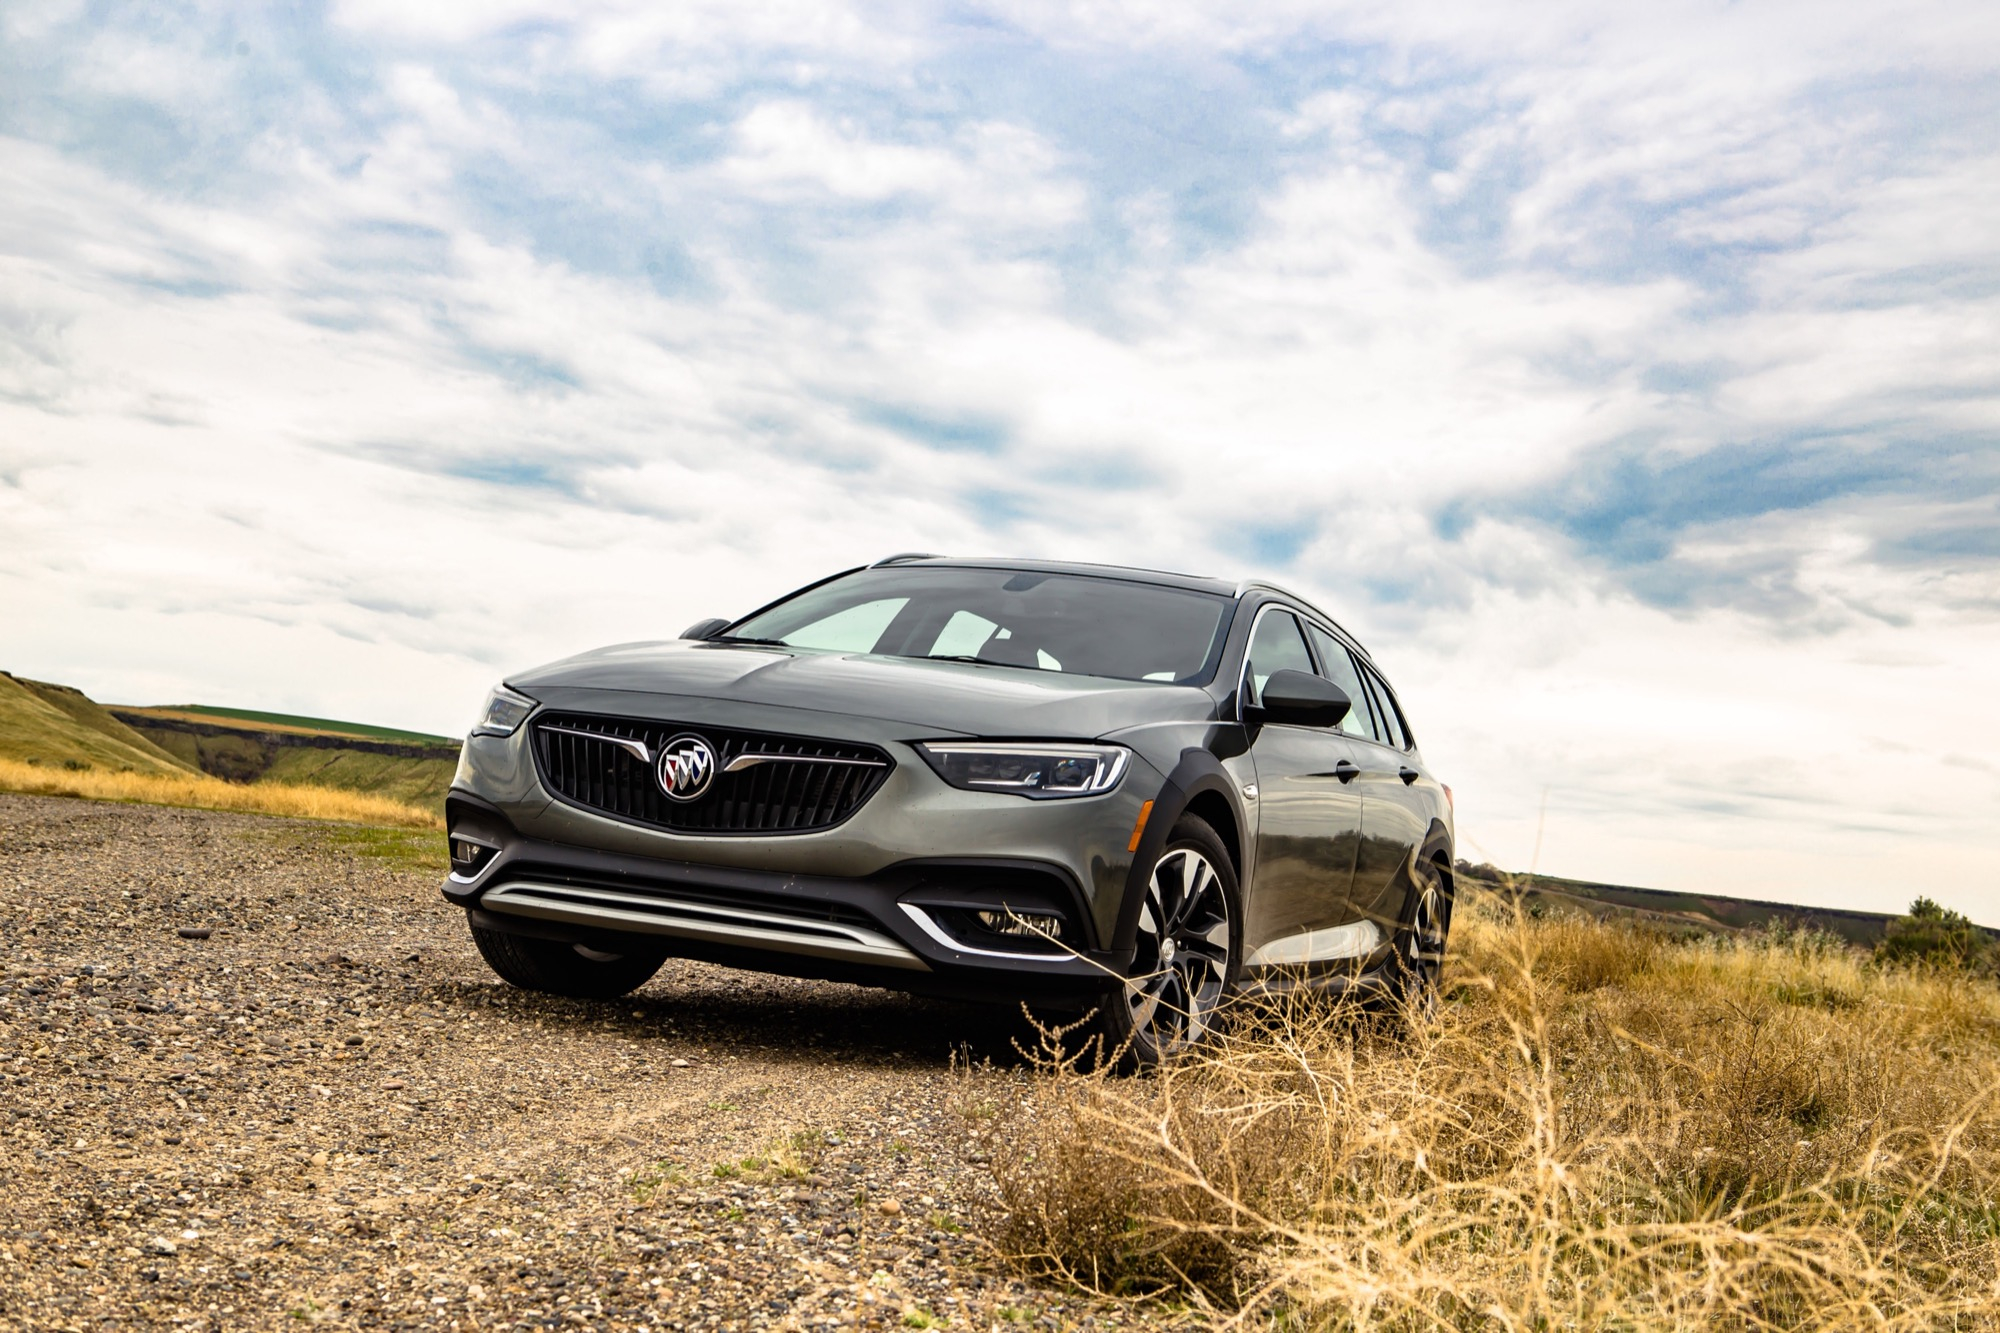 Buick Regal Discount Totals $6,250 In February 2020 | Gm New 2022 Buick Regal Sportback Specs, Used, 0-60